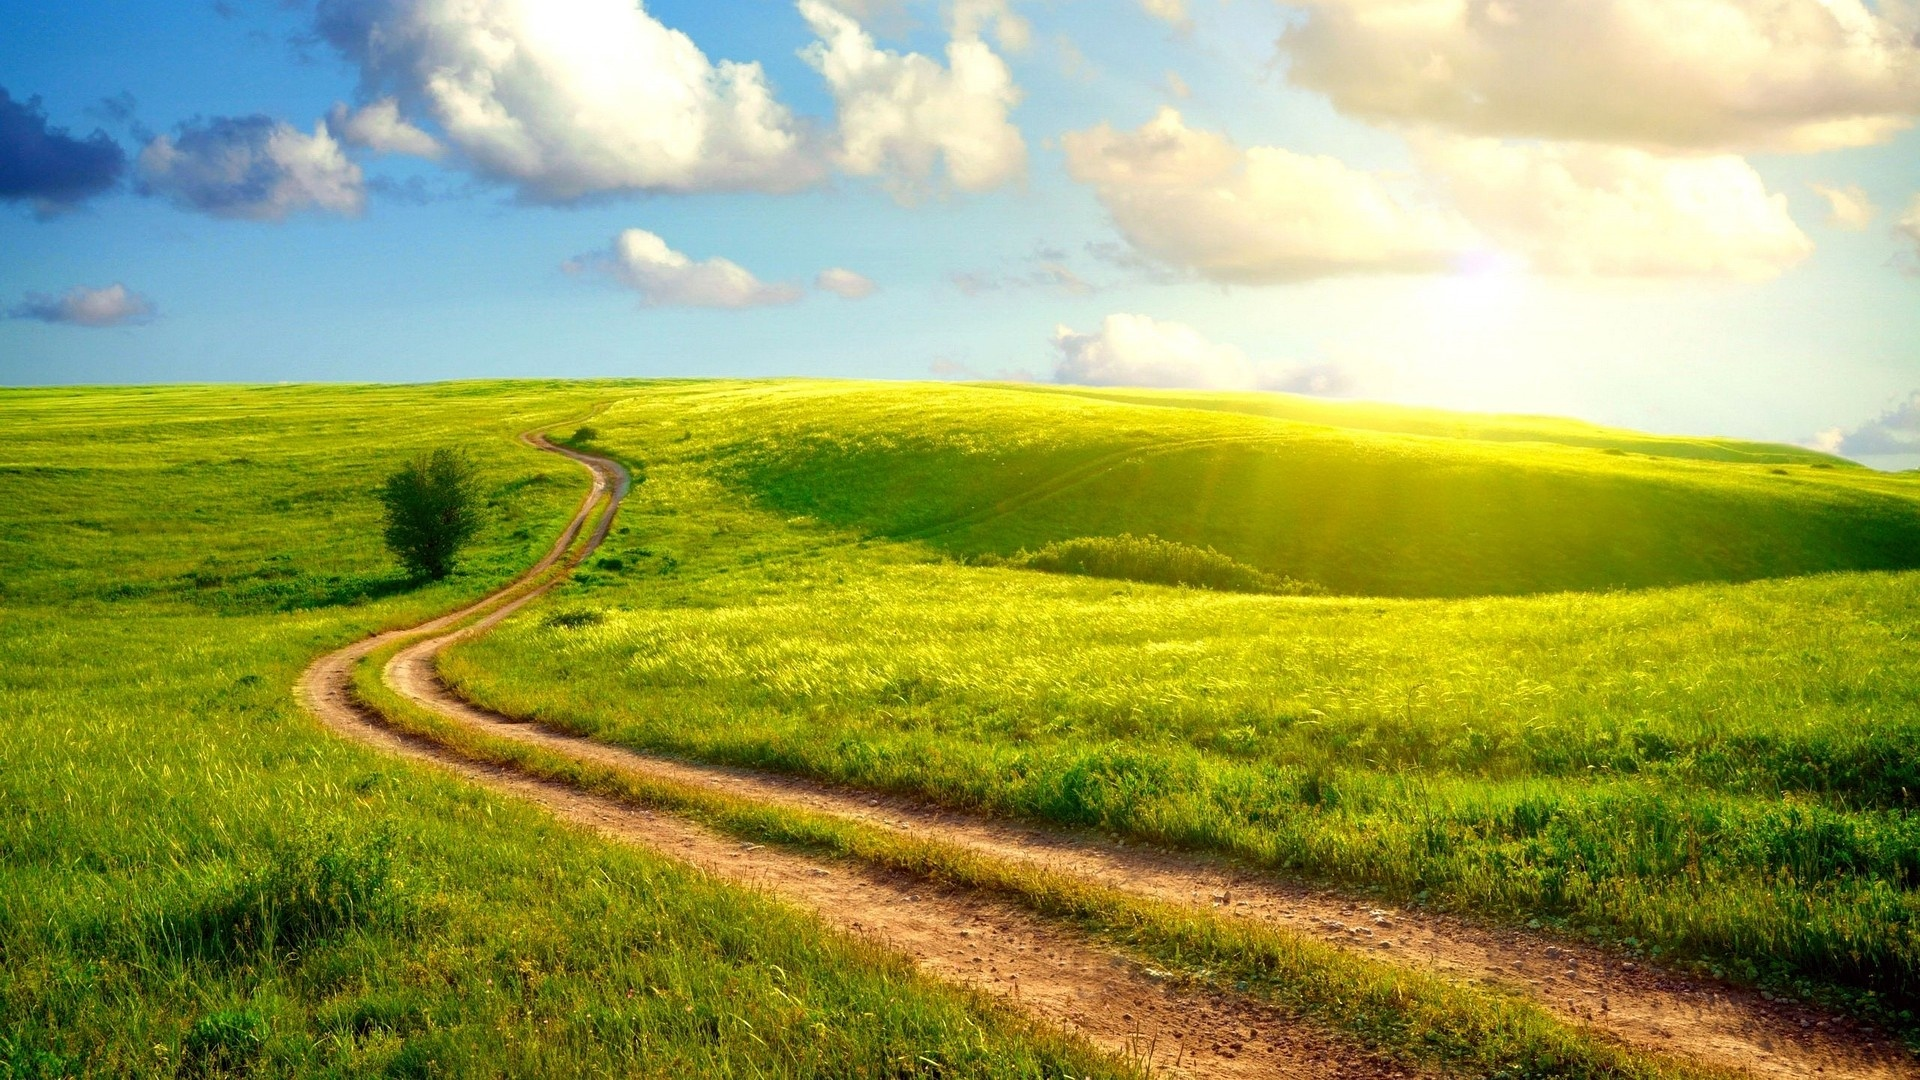 Sunny Day wallpaper for pc